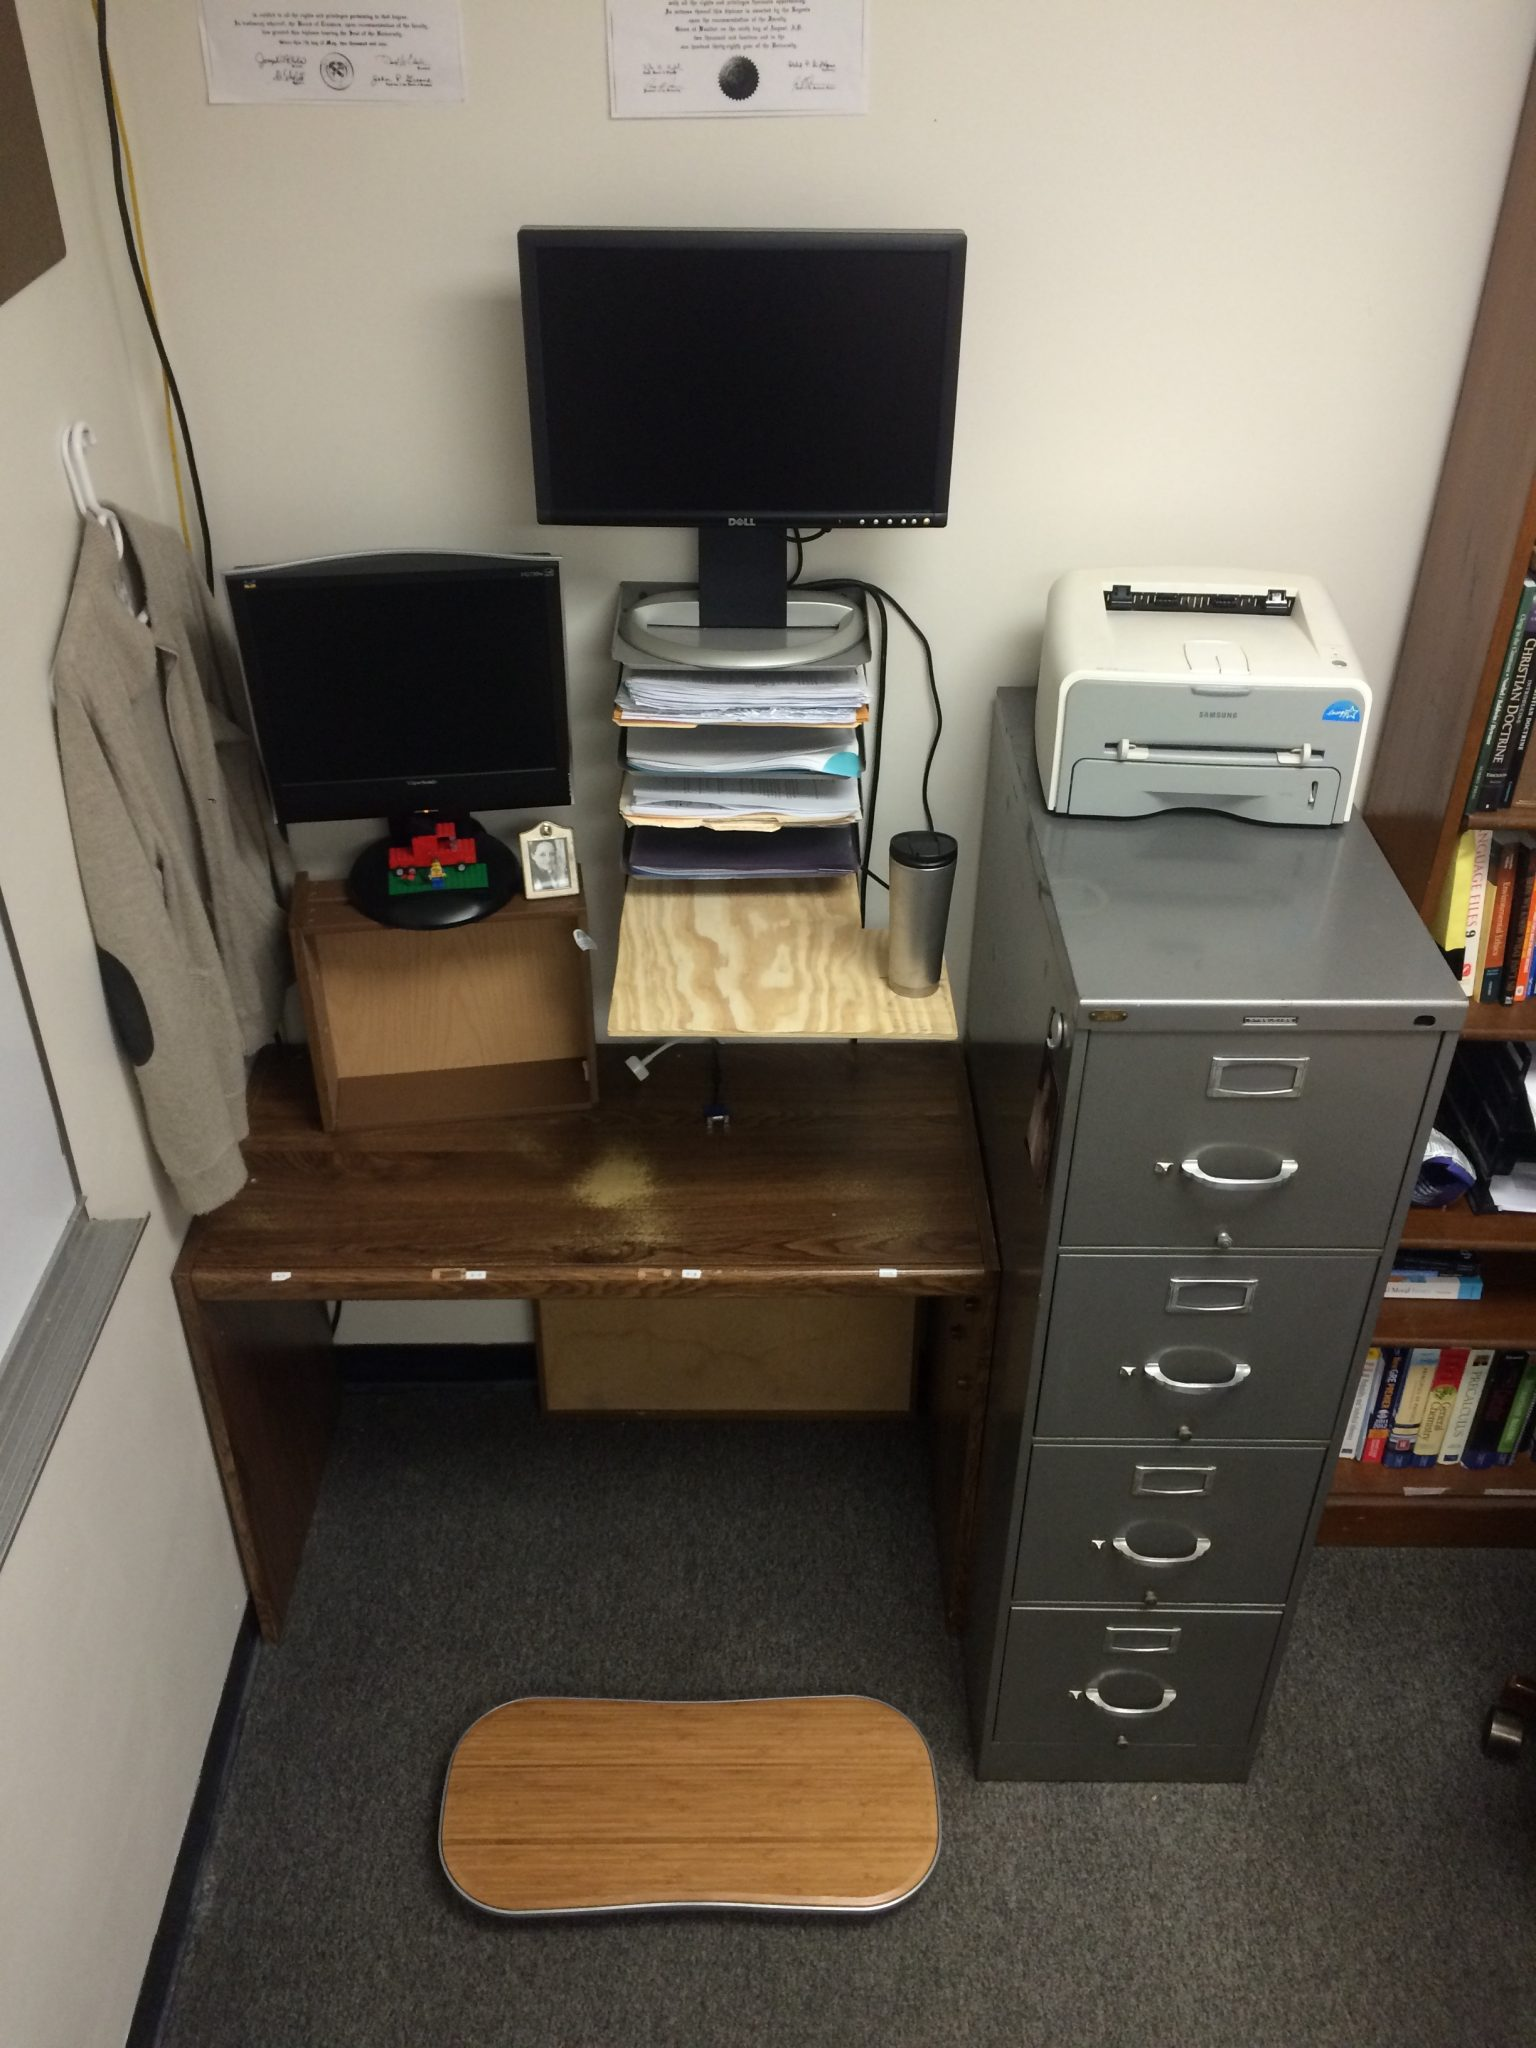 The recycled-drawer-slash-organizer-slash-plywood sit-stand desk.